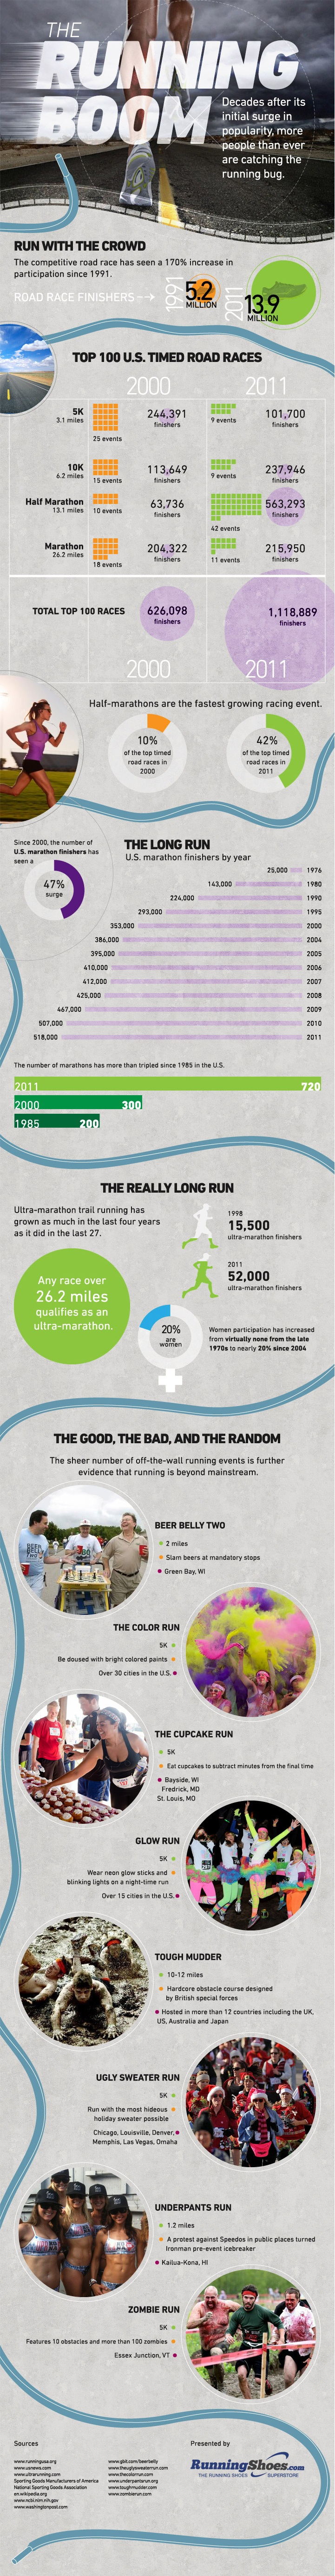 The Running Boom [Infographic] image The Running Boom